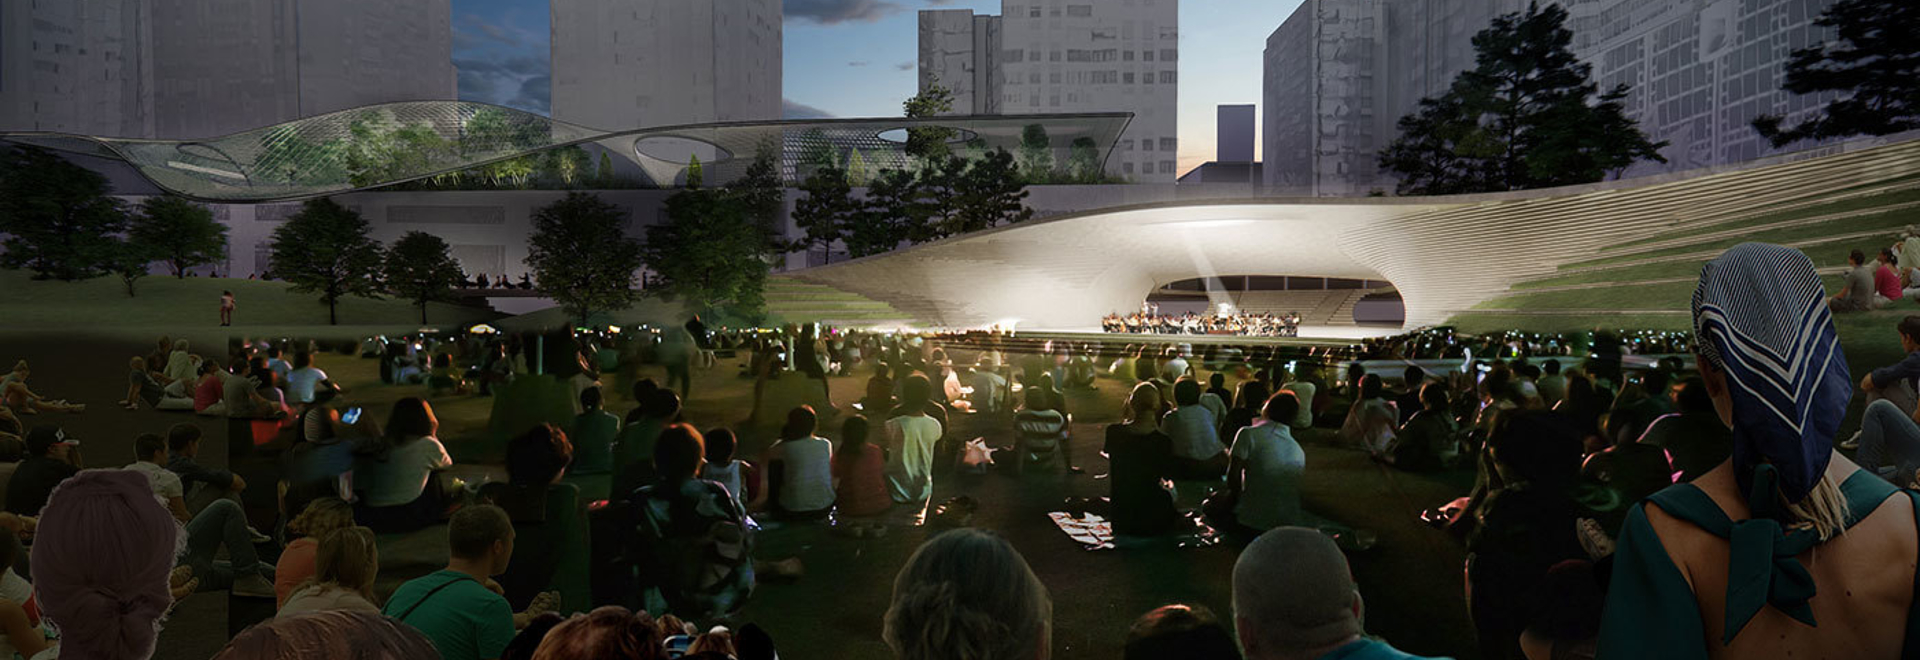 acoustic shell for events at the central green from east